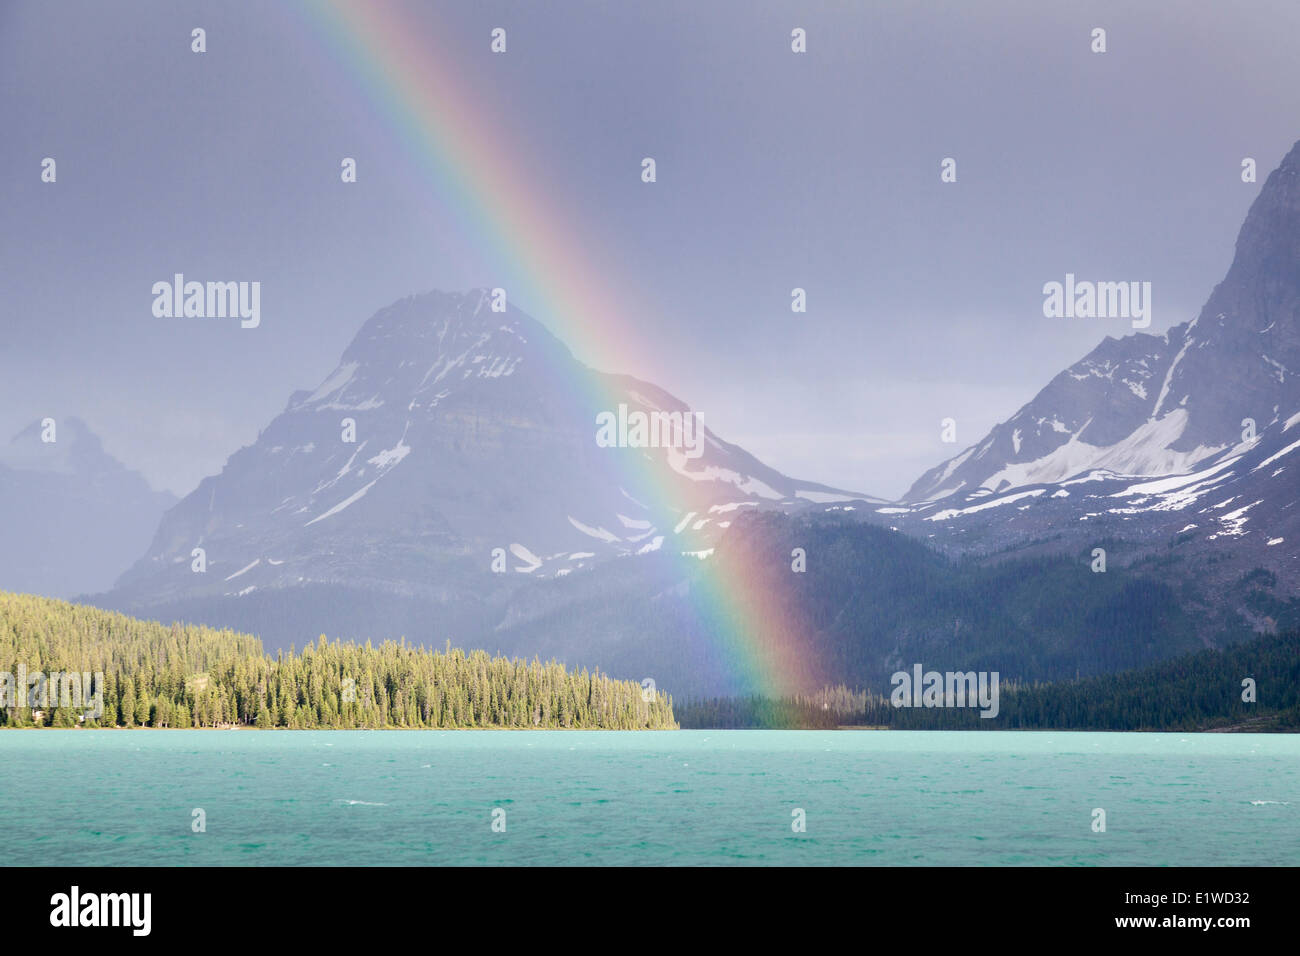 A rainbow over Bow Lake in Banff National Park, Alberta, Canada - Stock Image